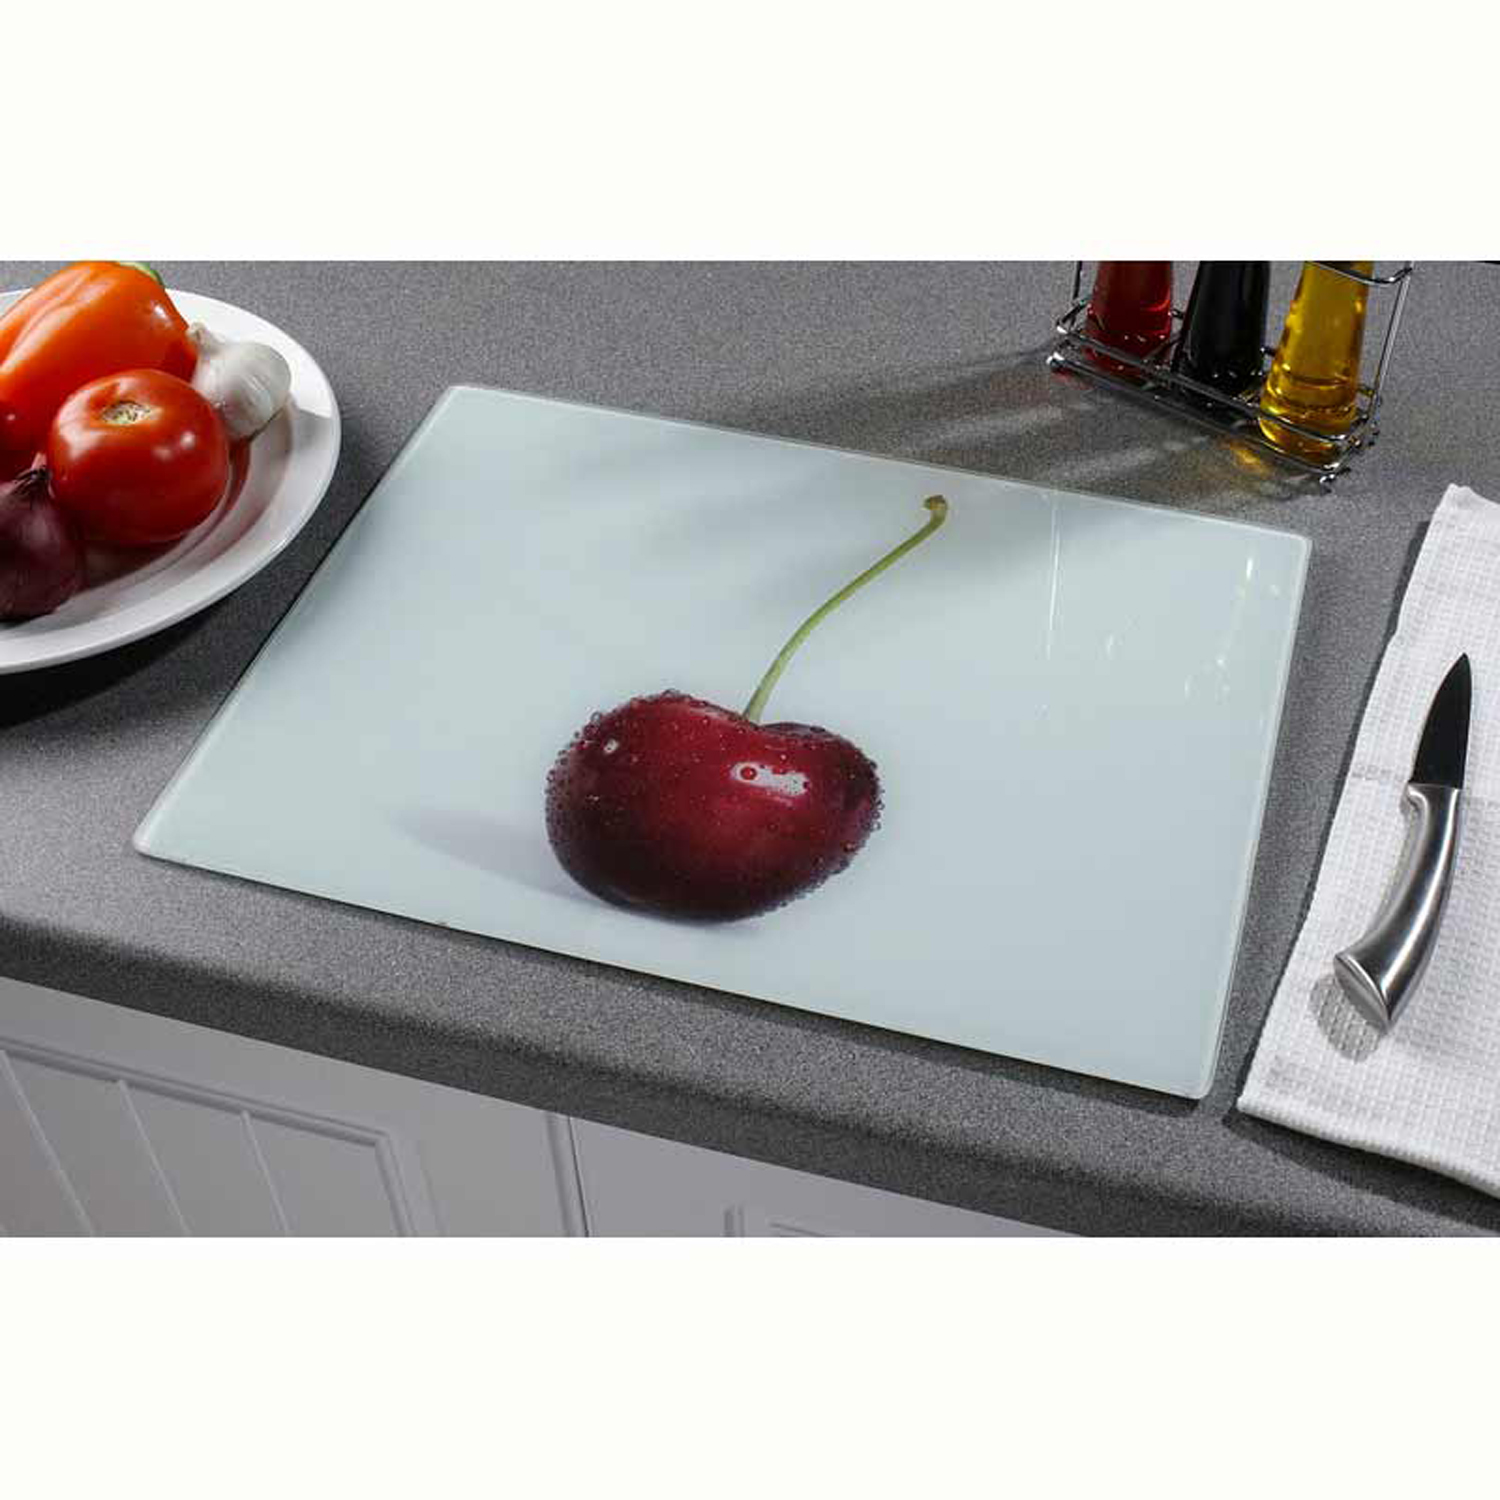 glass worktop saver cherry home store more. Black Bedroom Furniture Sets. Home Design Ideas